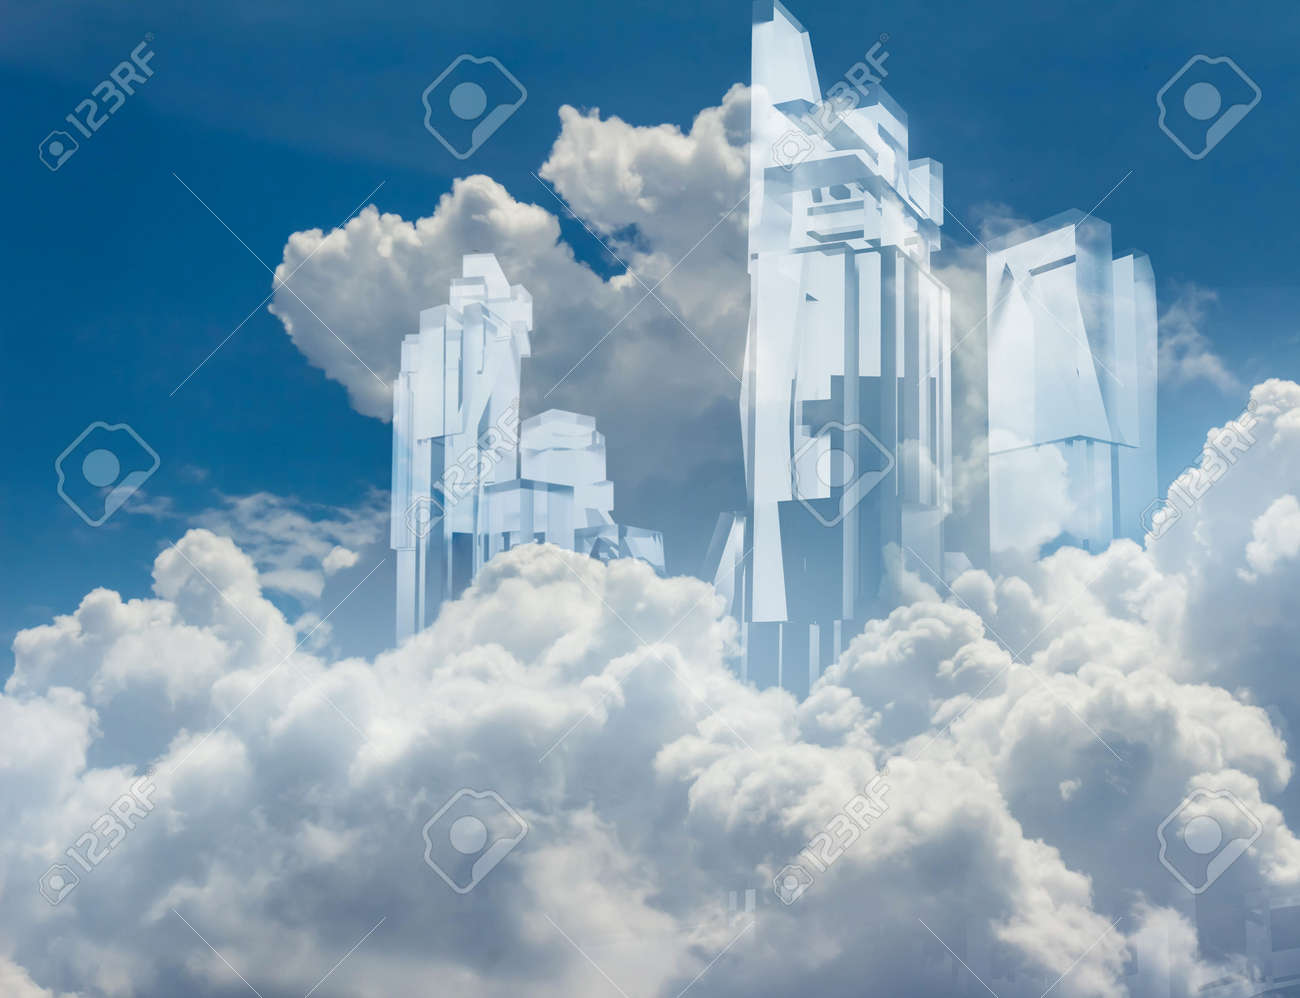 Artwork of a crystal build transparent glass skycrapers flying